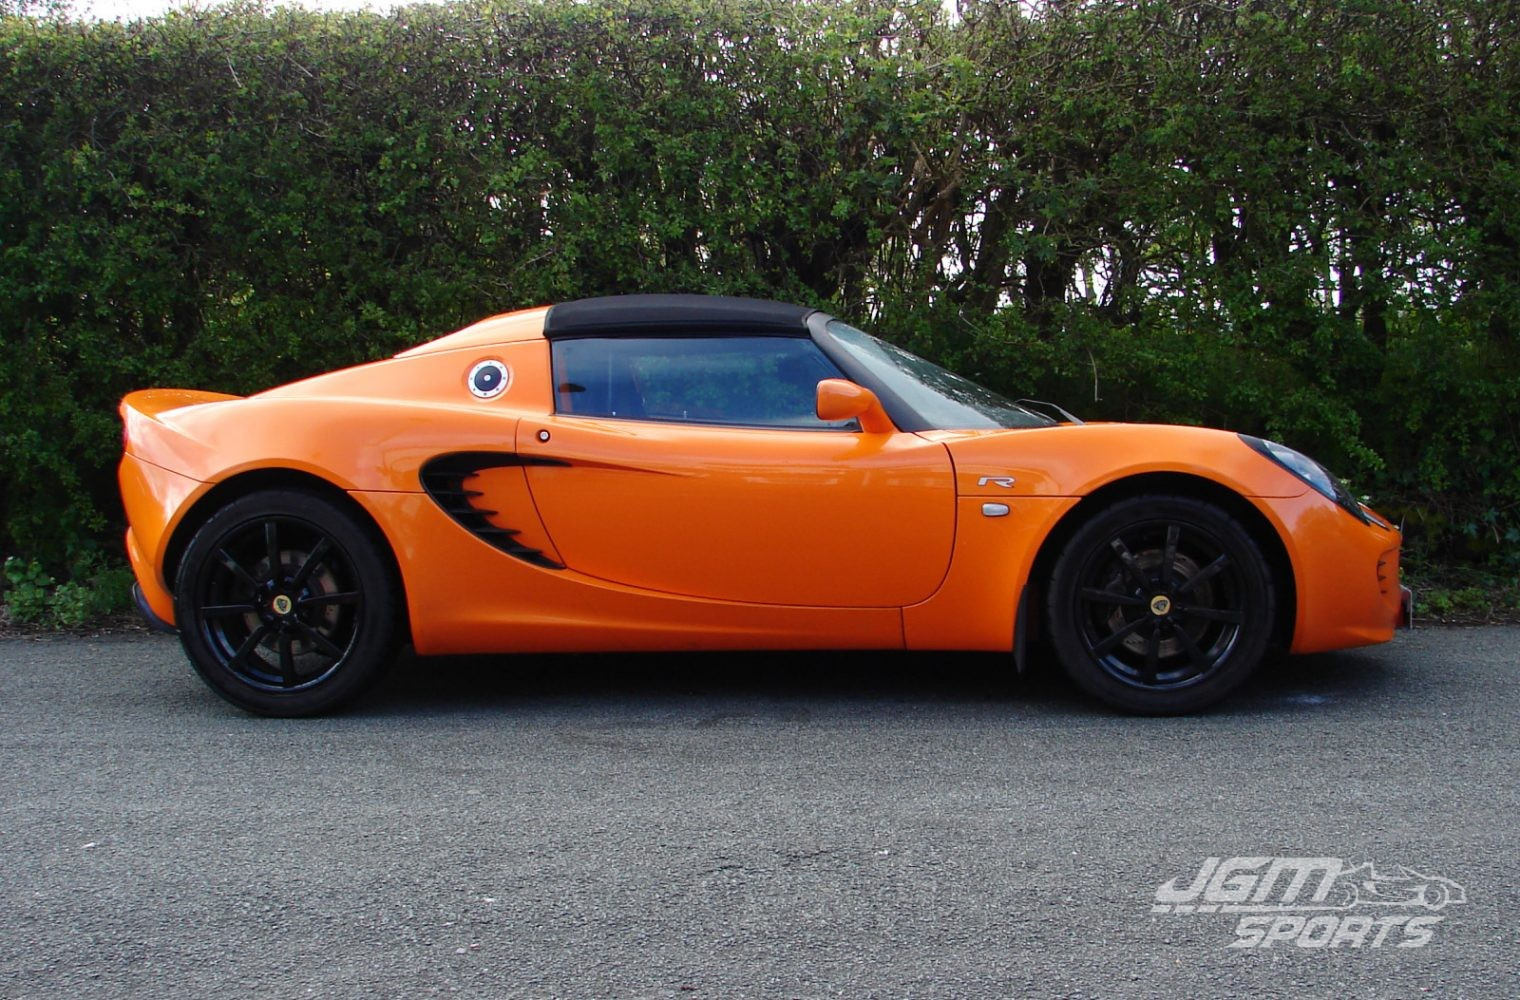 http://www.jgmsports.co.uk/wp-content/uploads/2007-S2-LOTUS-ELISE-R-2-OWNERS-FROM-NEW-CHROME-ORANGE-1520x1000.jpg